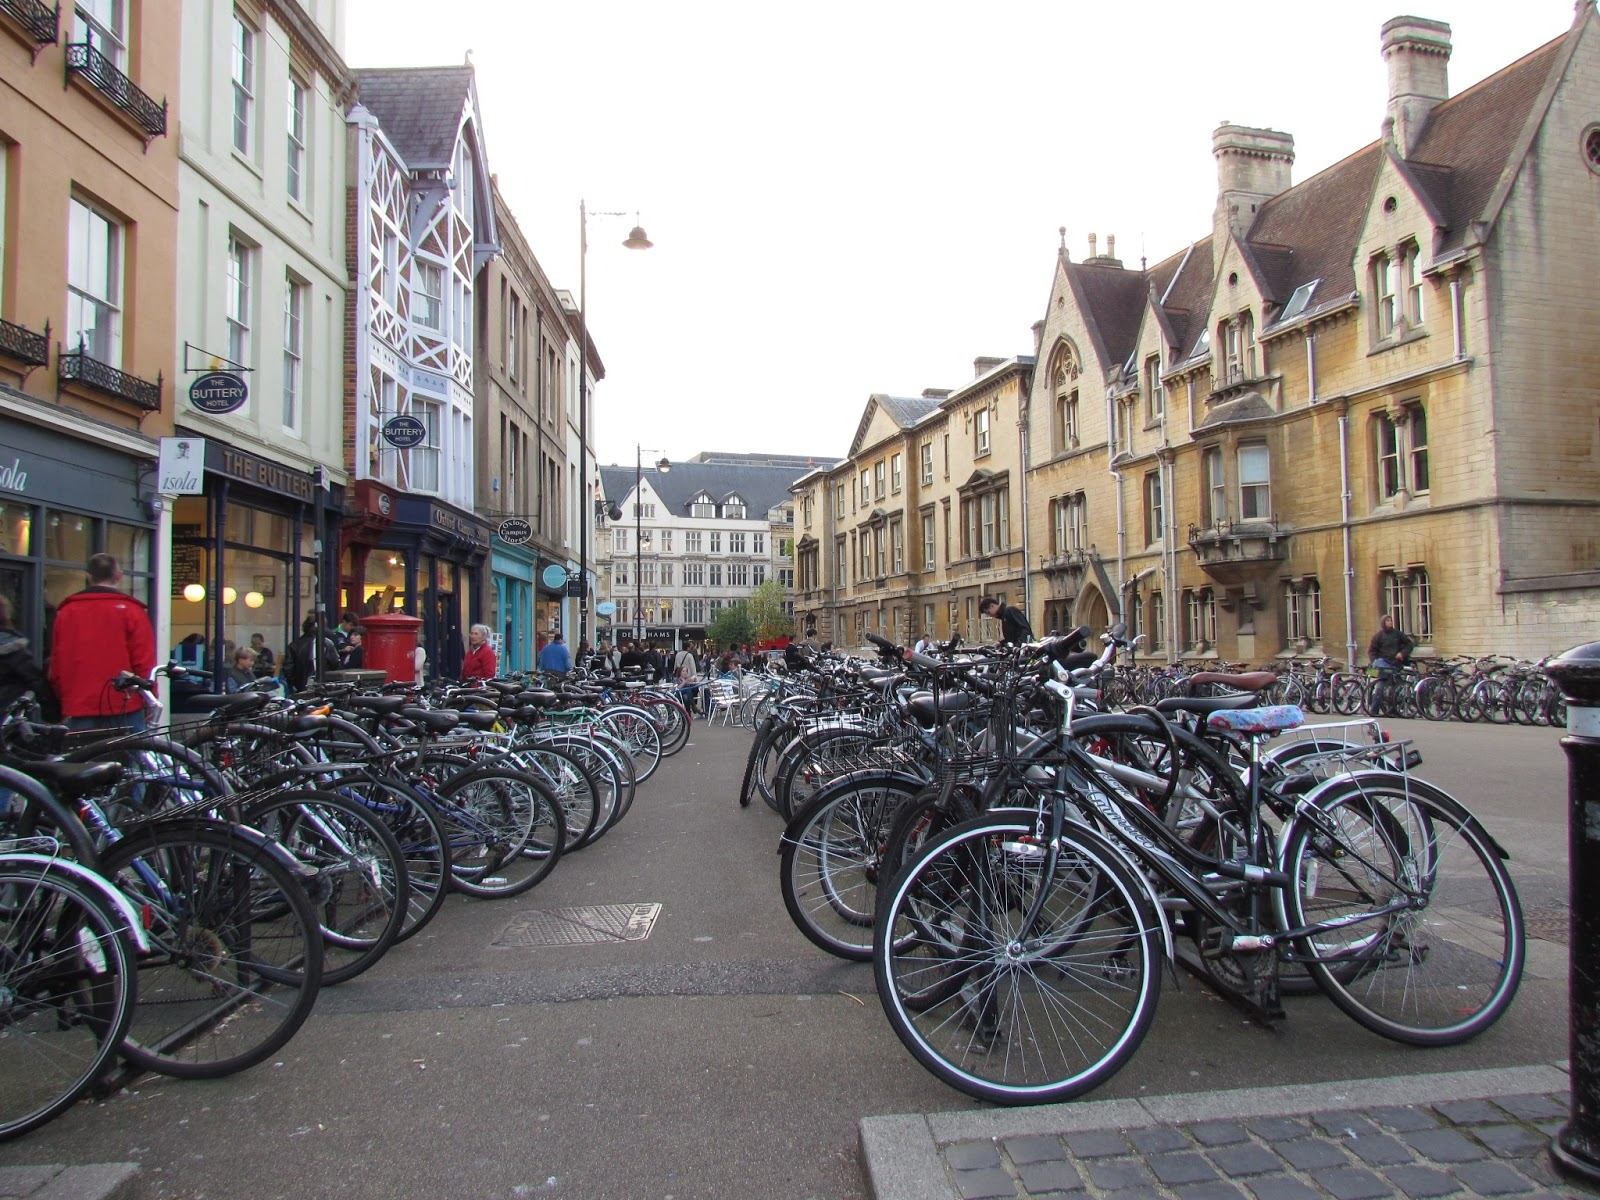 A veces en bici a veces no parking de bicicletas en oxford - Parking de bicicletas ...